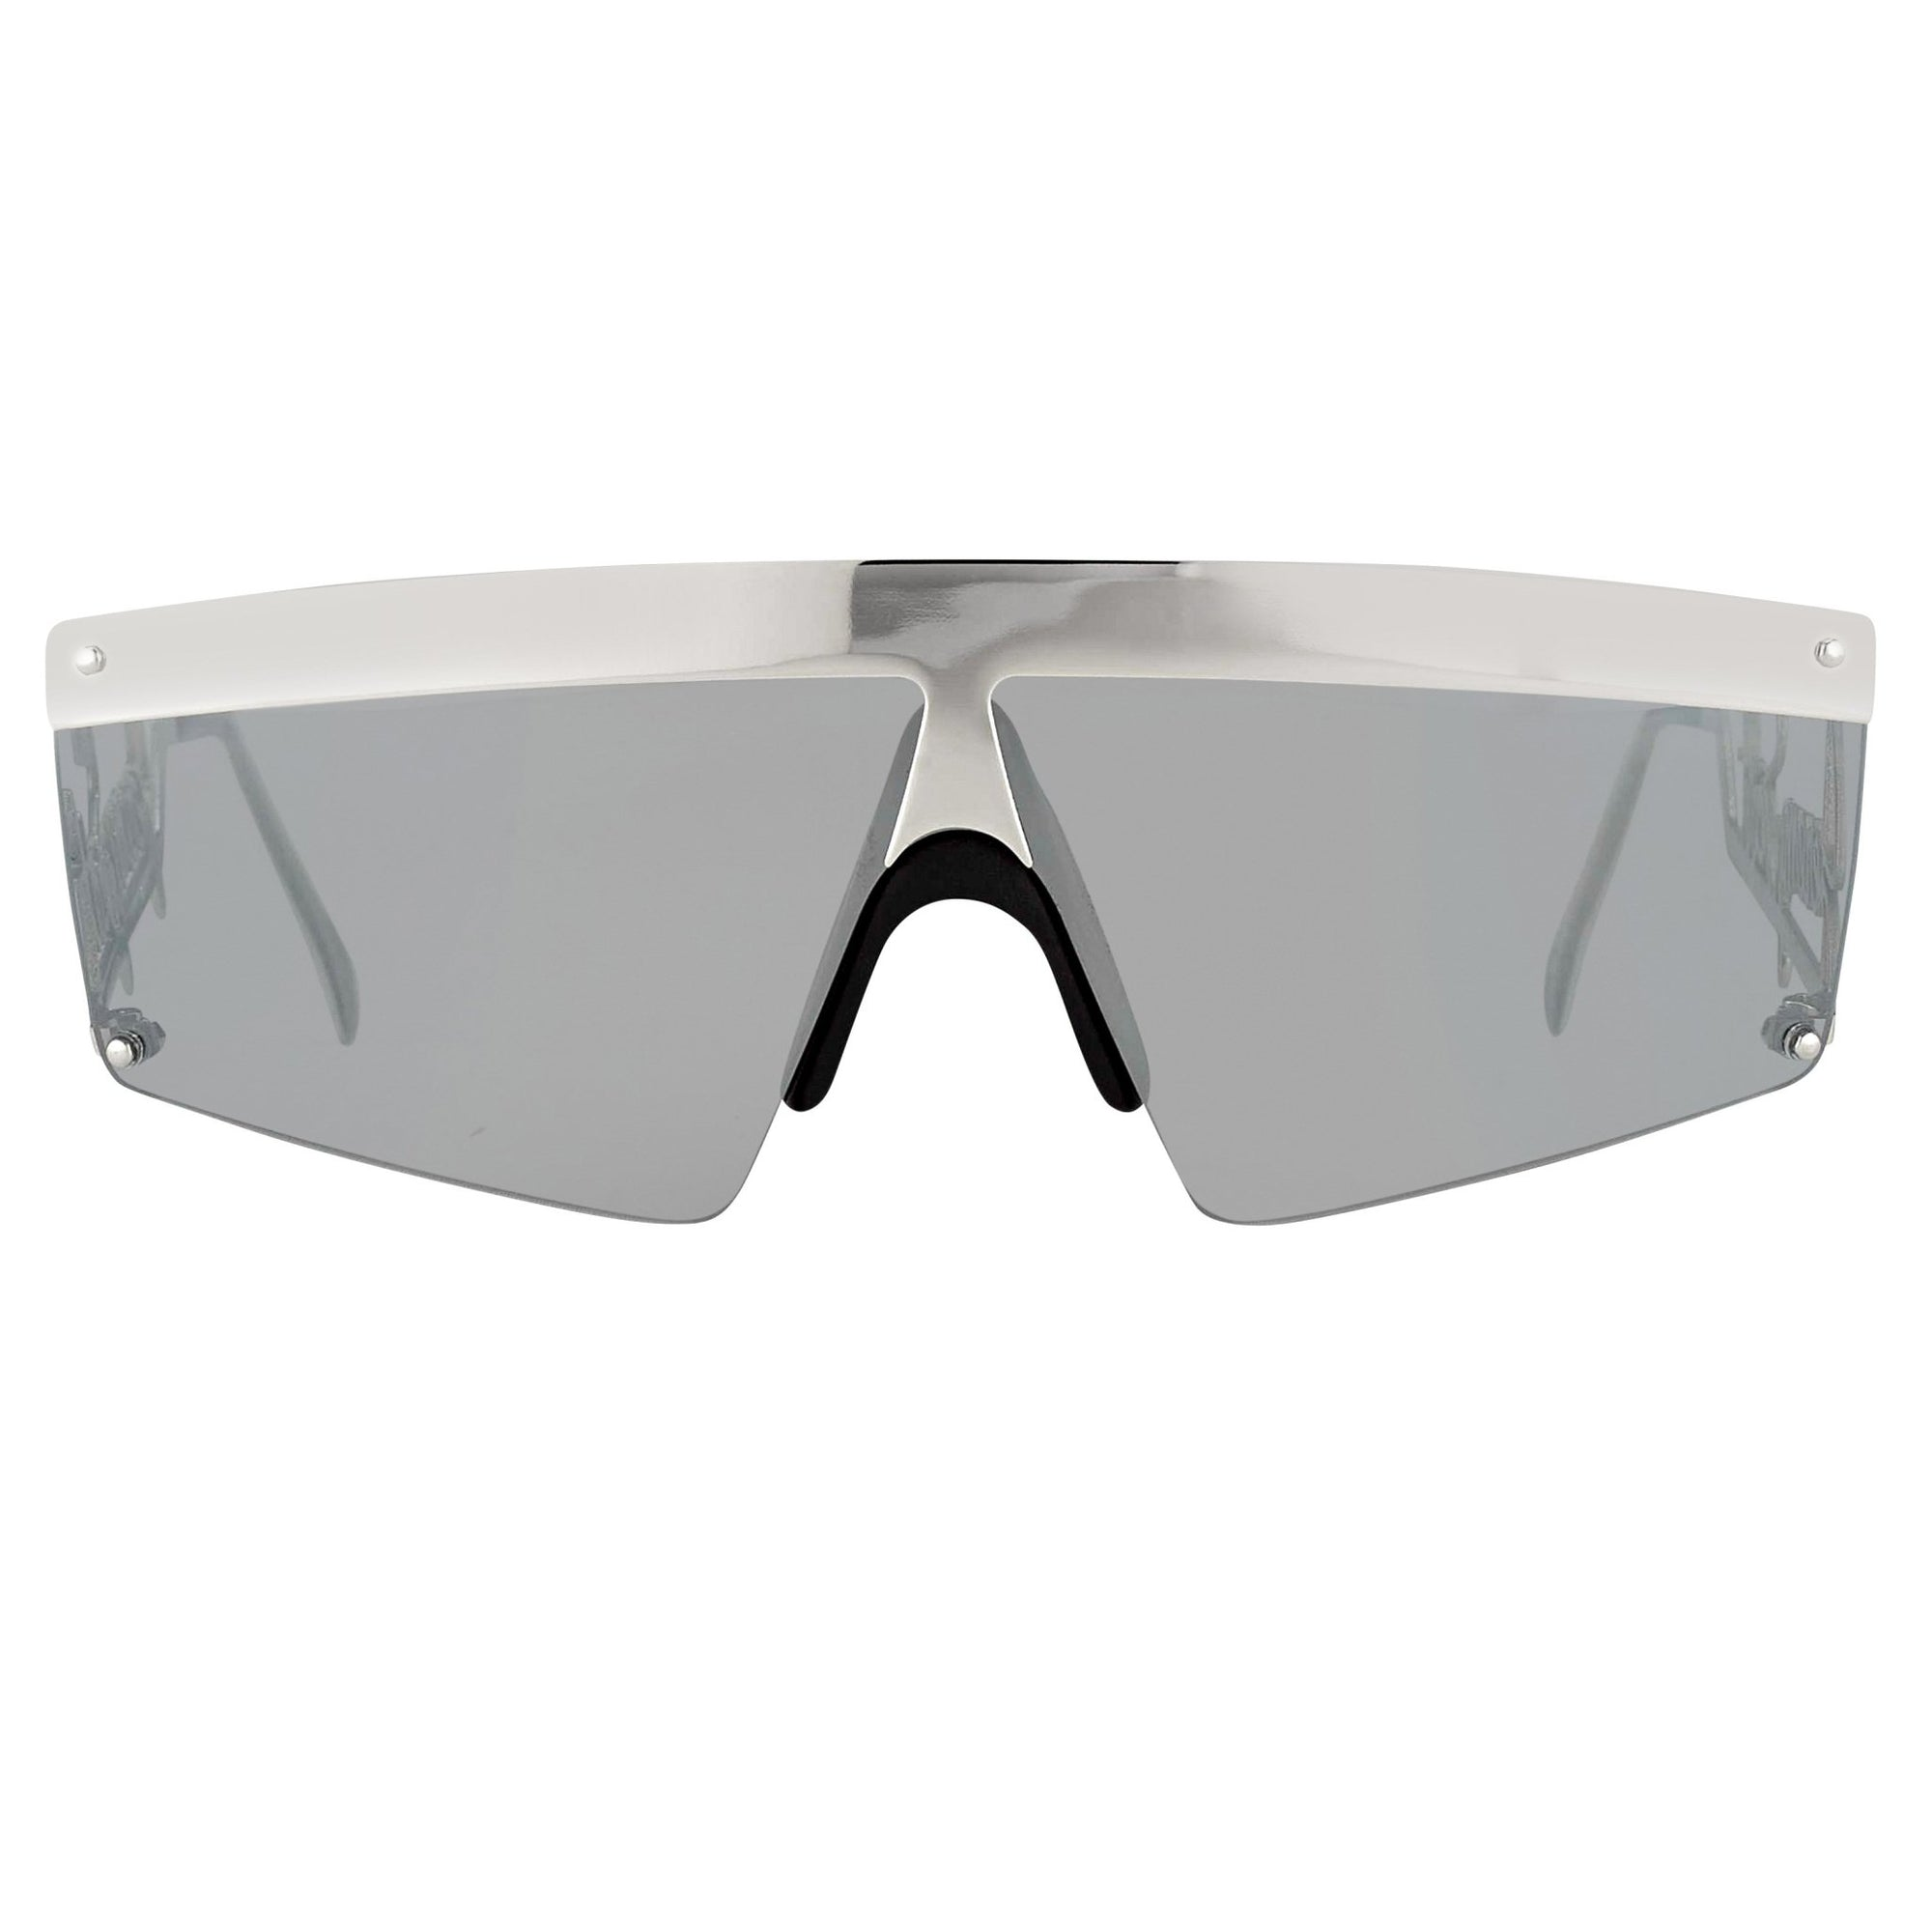 Jeremy Scott Unisex Sunglasses Signature Visor White Gold Silver With Silver Mirror CAT3 Lenses JSSIGNATUREC5SUN - Watches & Crystals